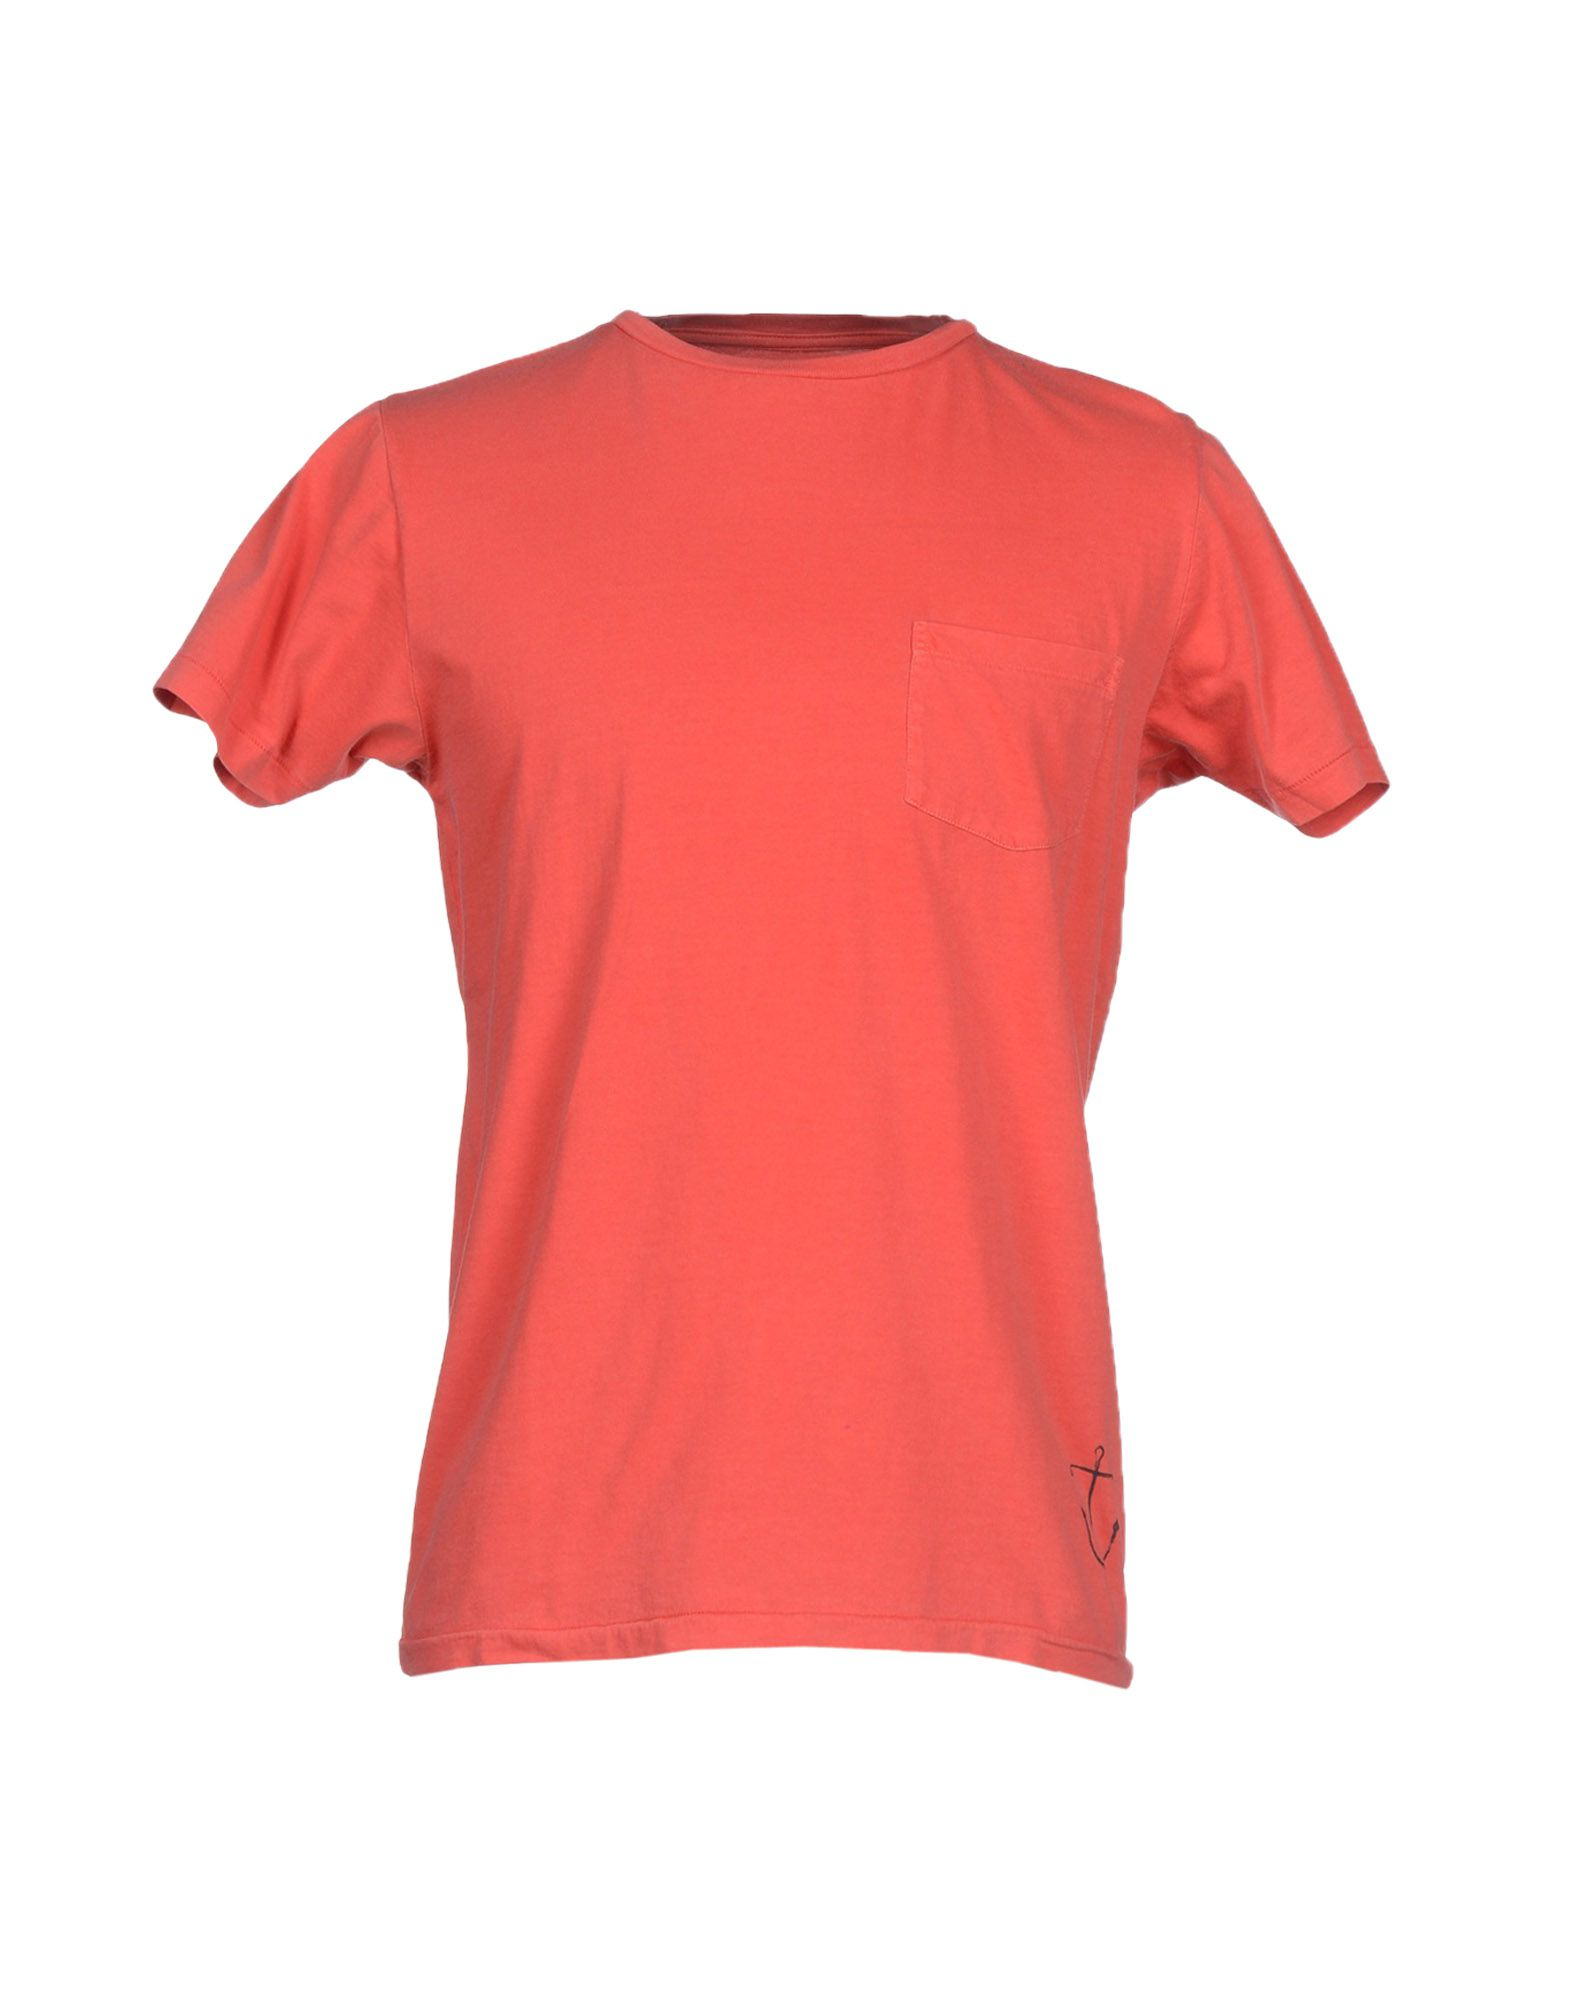 Bowery supply co t shirt in red for men lyst for The red t shirt company